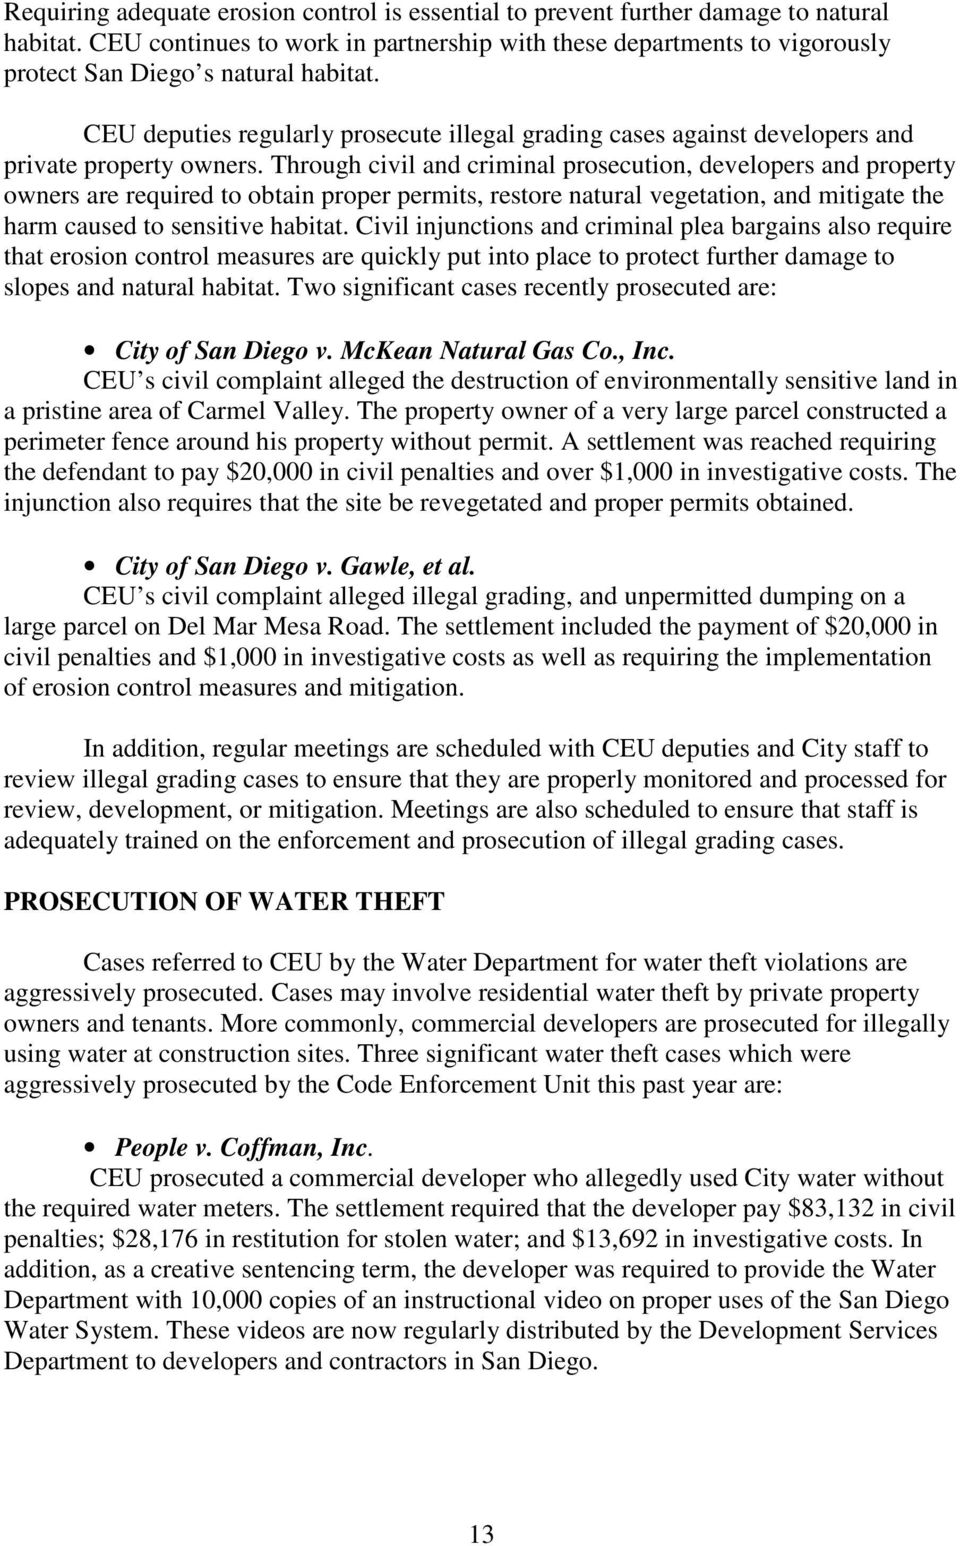 CEU deputies regularly prosecute illegal grading cases against developers and private property owners.